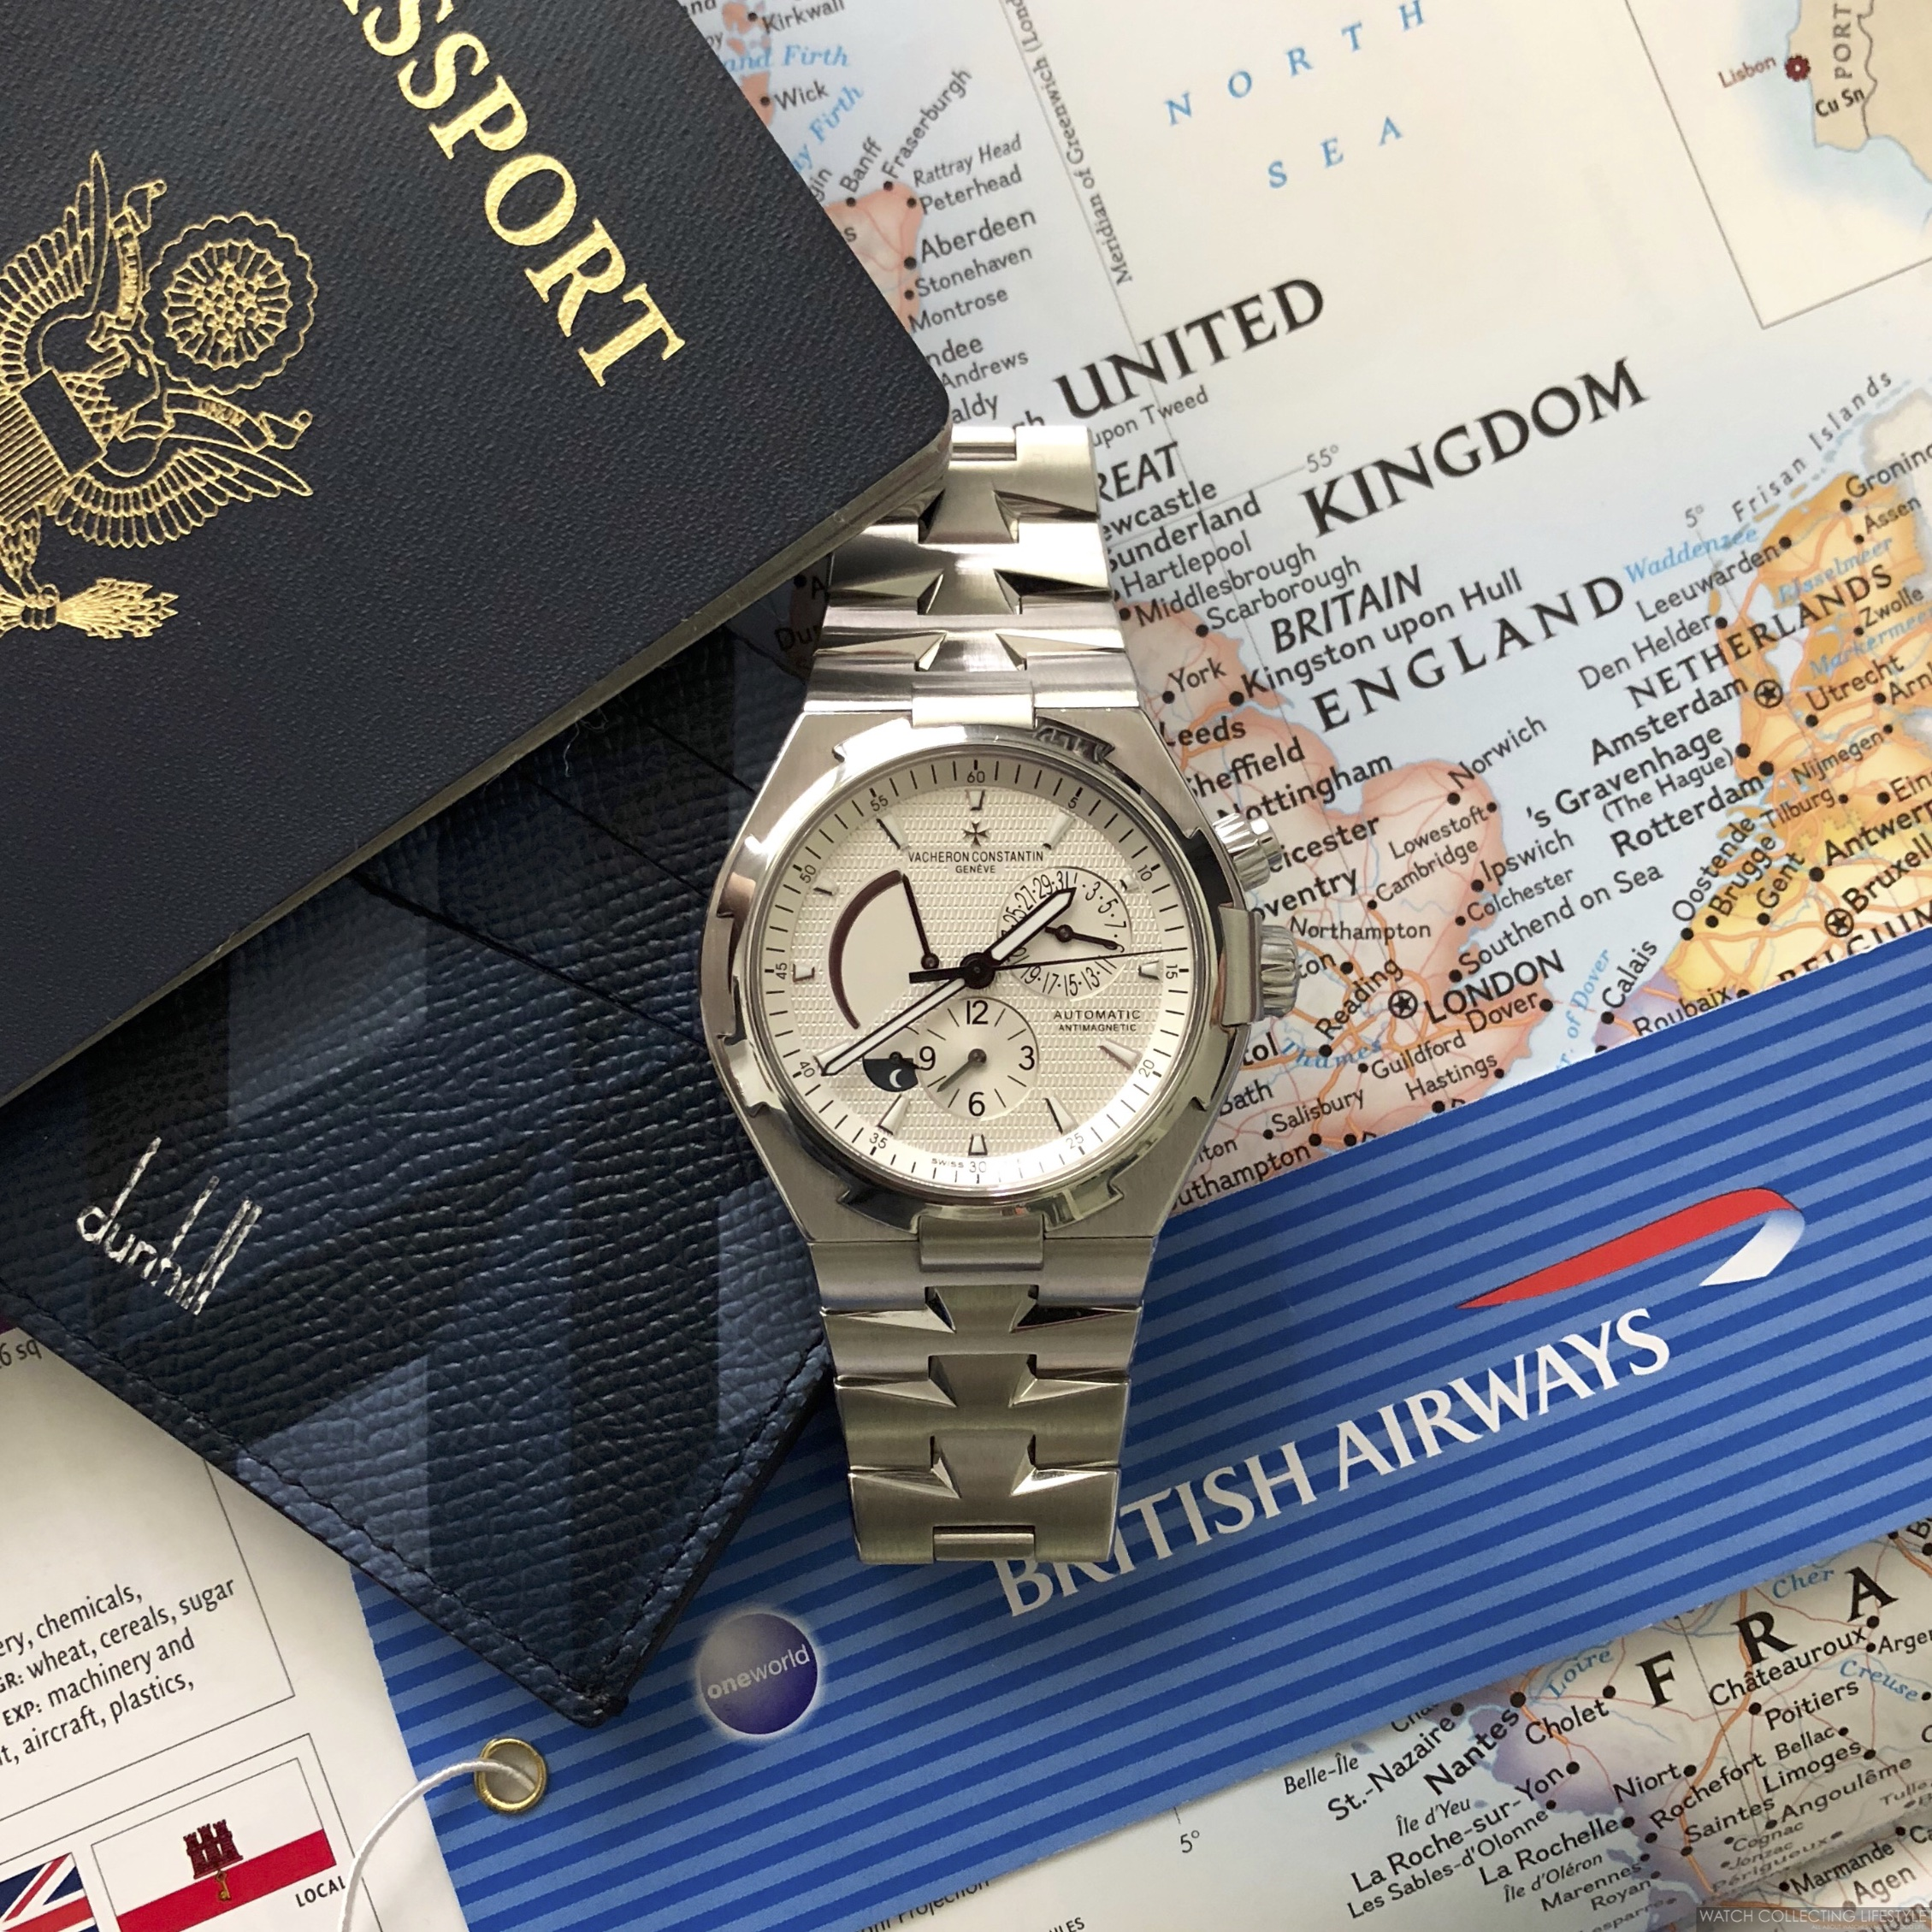 Maitre D Oeuvre Cholet experience: vacheron constantin launch of the fiftysix